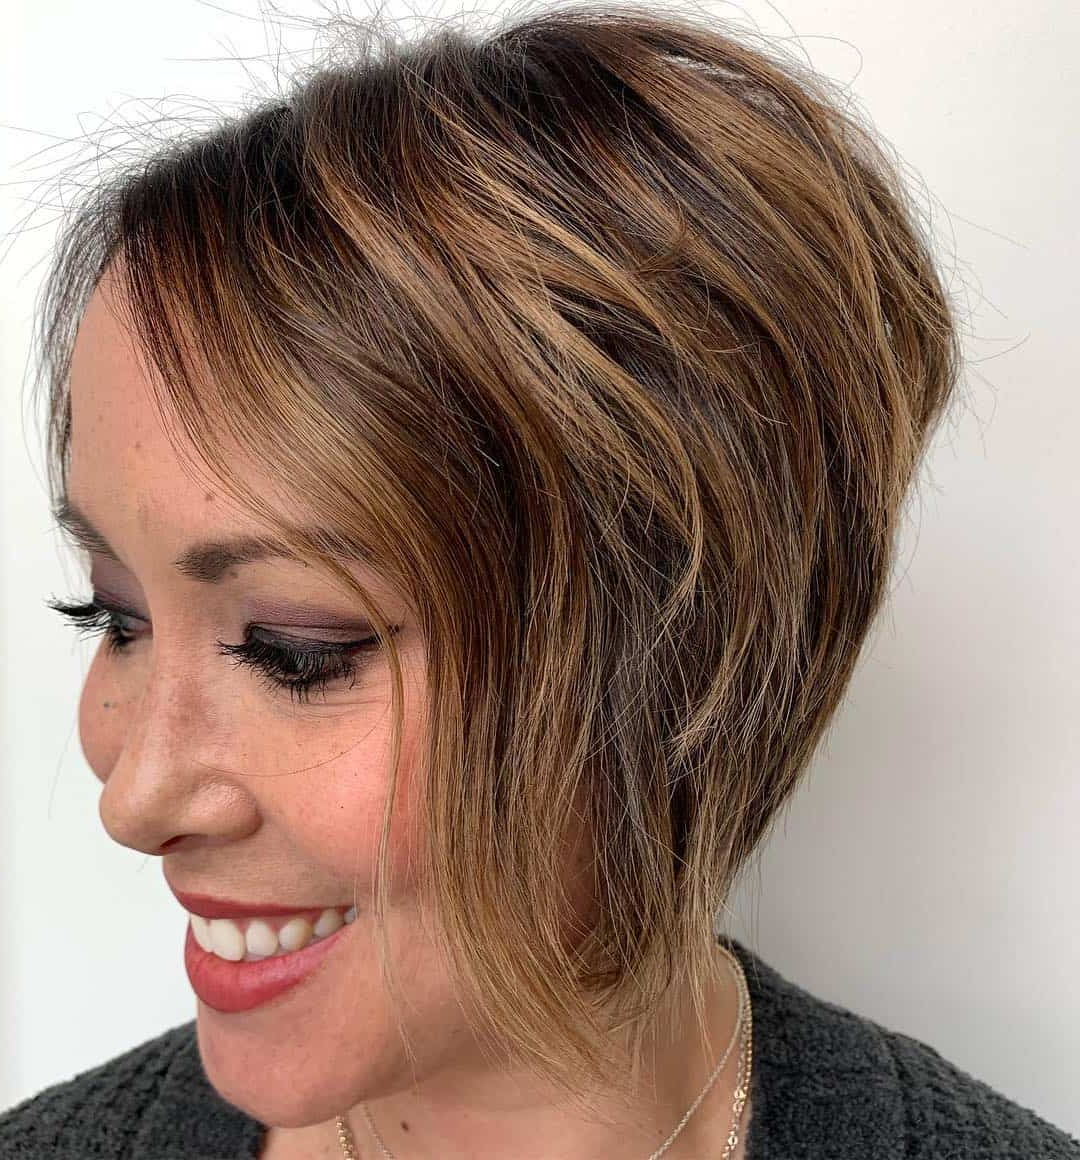 26 Stunning Long Pixie Haircuts For The Hot Season – Wild Inside Popular Long Pixie Hairstyles With Skin Fade (View 9 of 20)